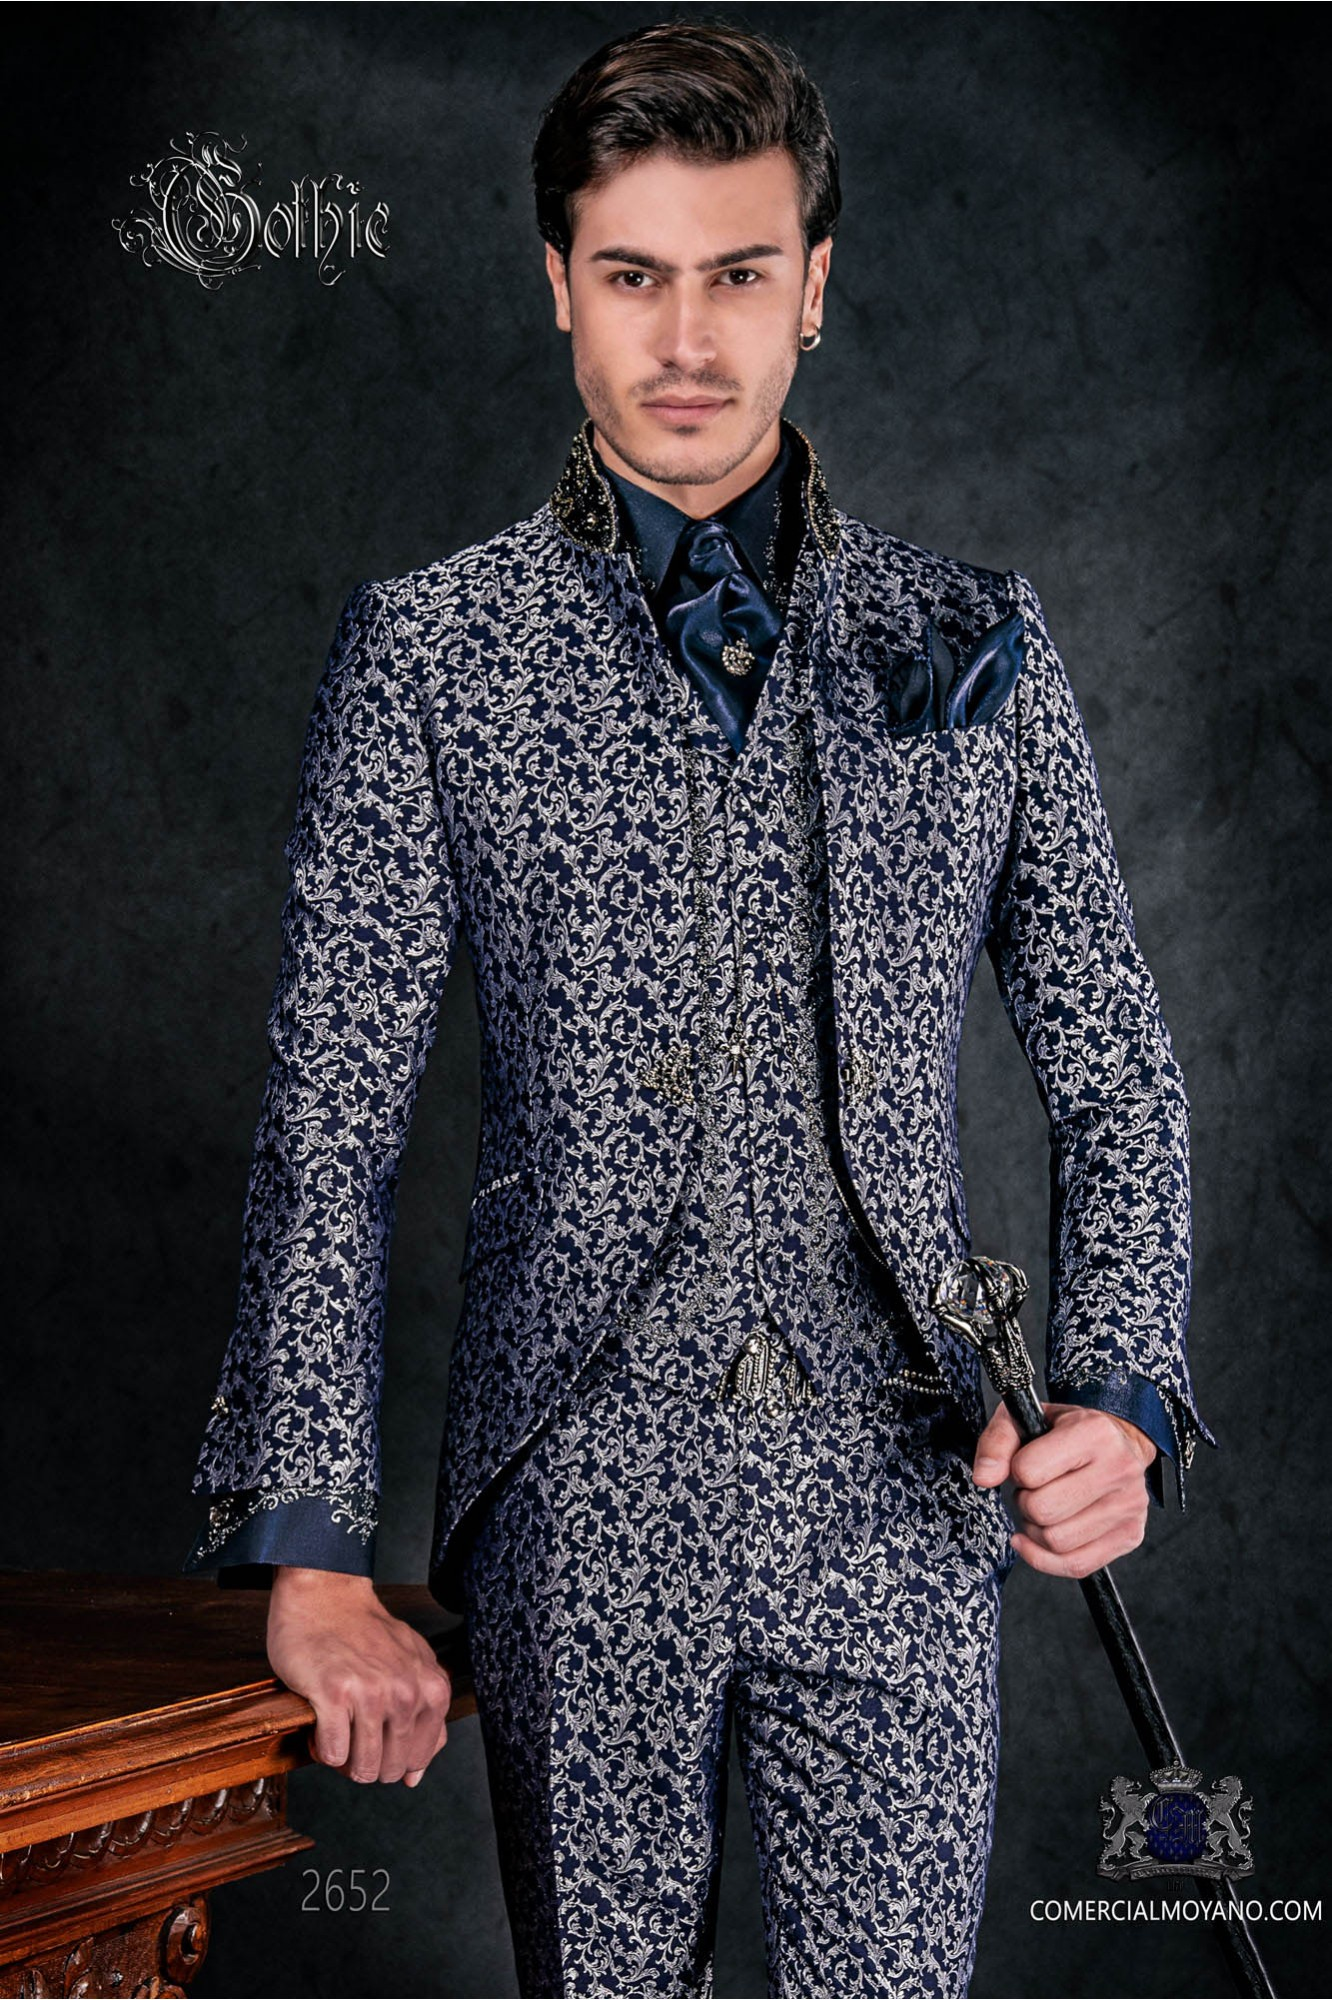 Vintage Men wedding frock coat in blue and silver brocade fabric with Mao collar with black rhinestones